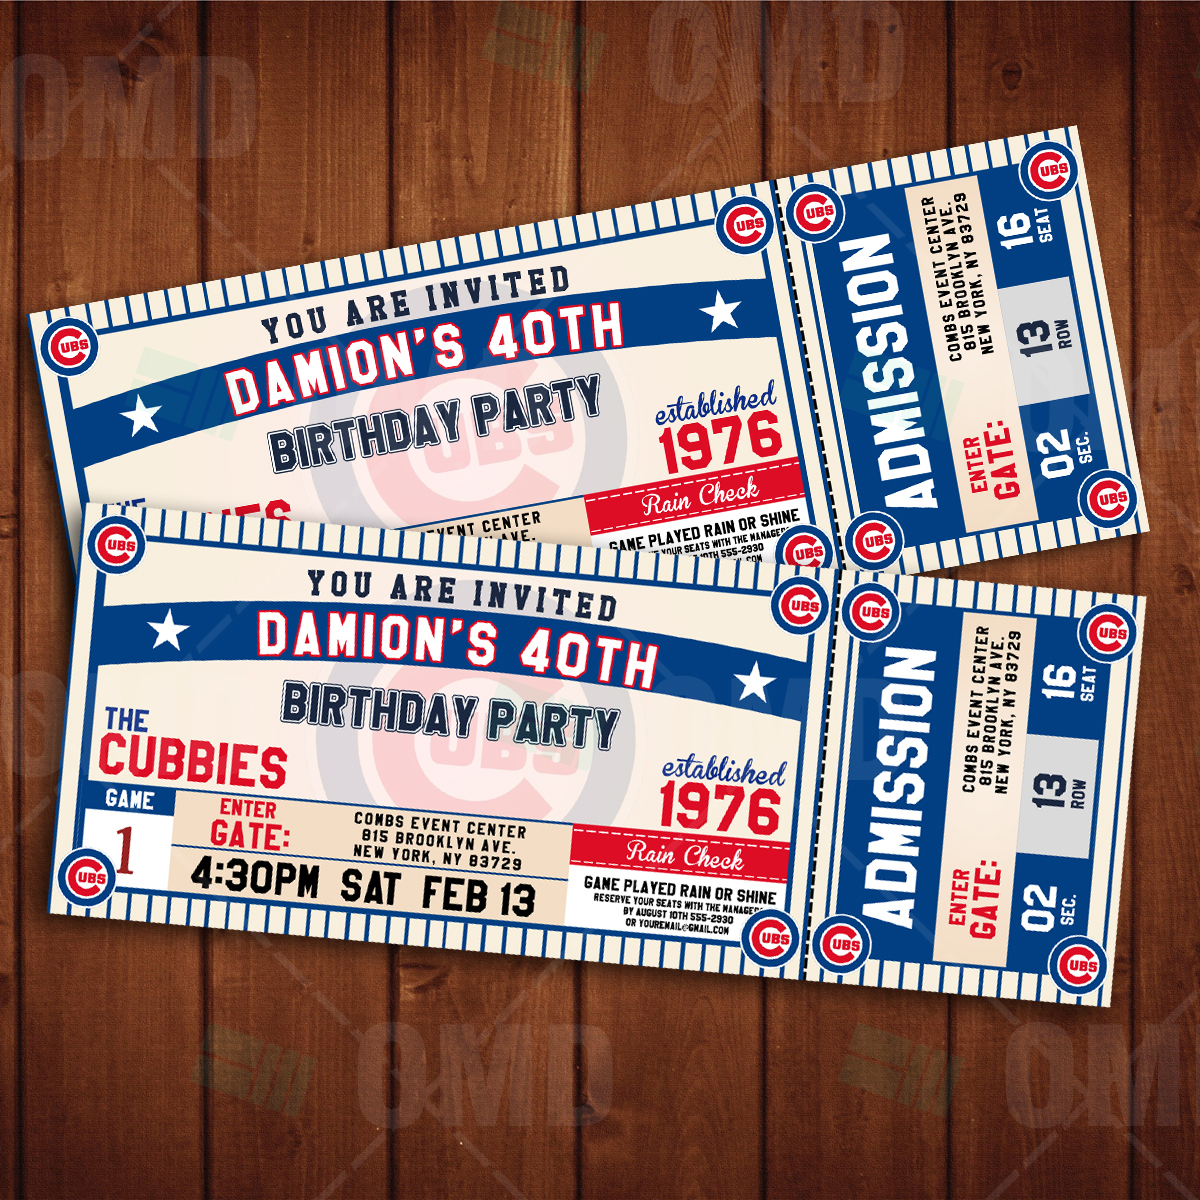 Sports Invites Chicago Cubs Ticket Style Sports Party Invitations – Ticket Style Birthday Invitations